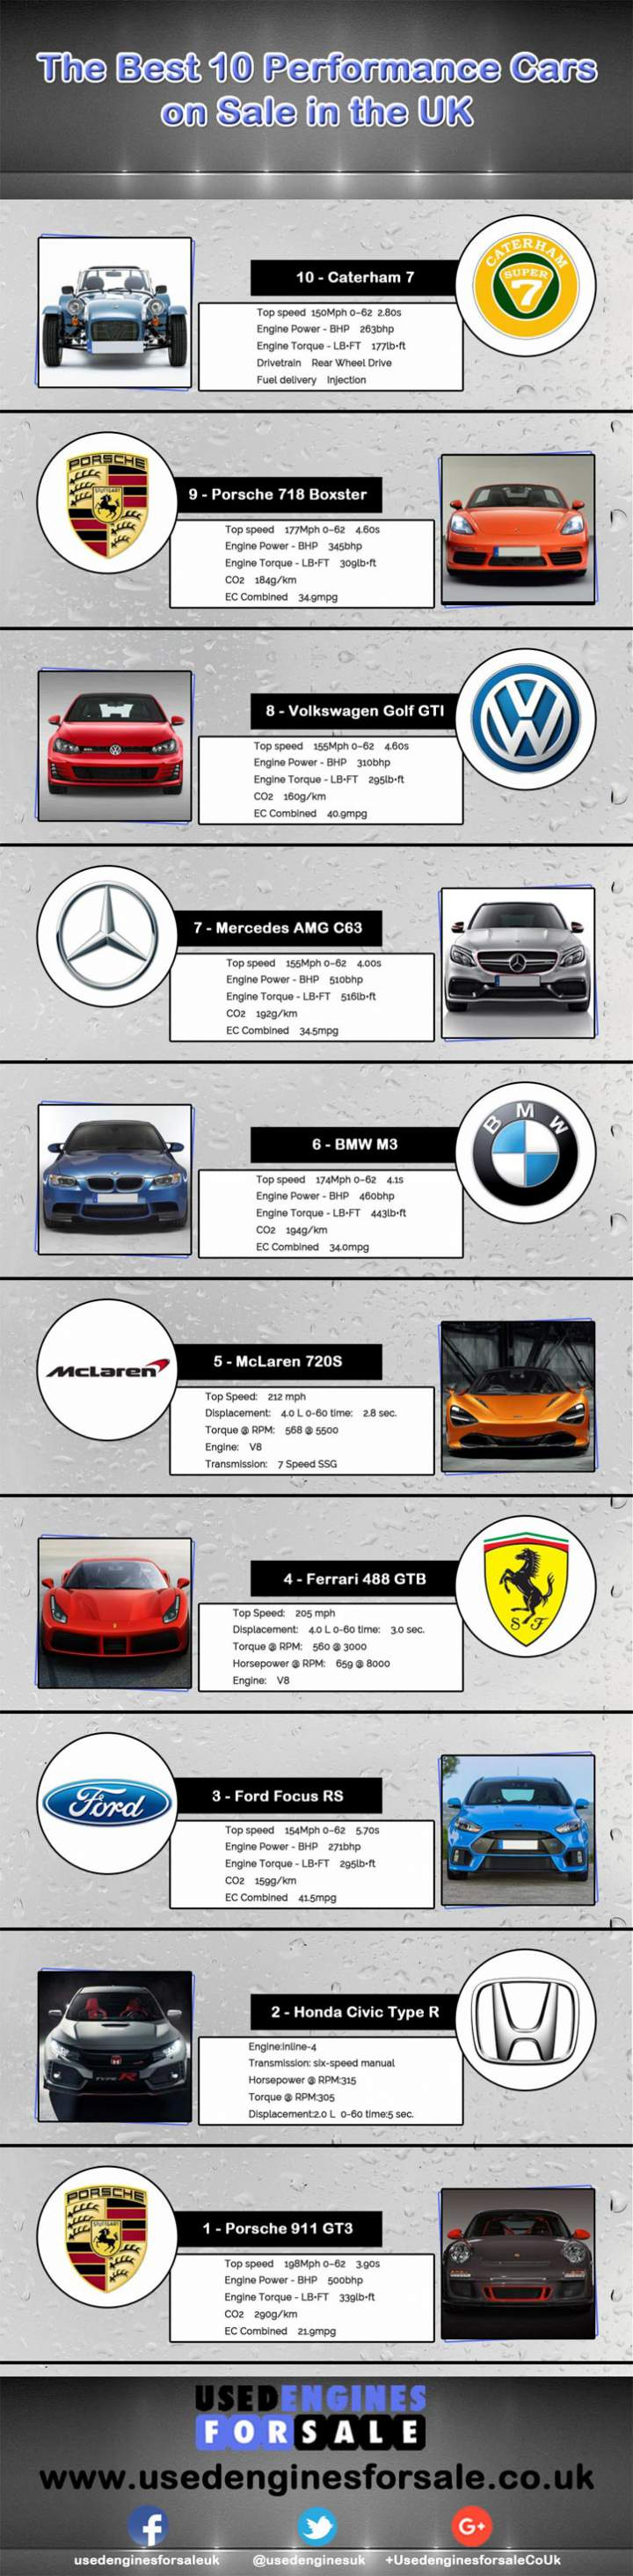 The Best 10 Performance Cars on Sale in the UK